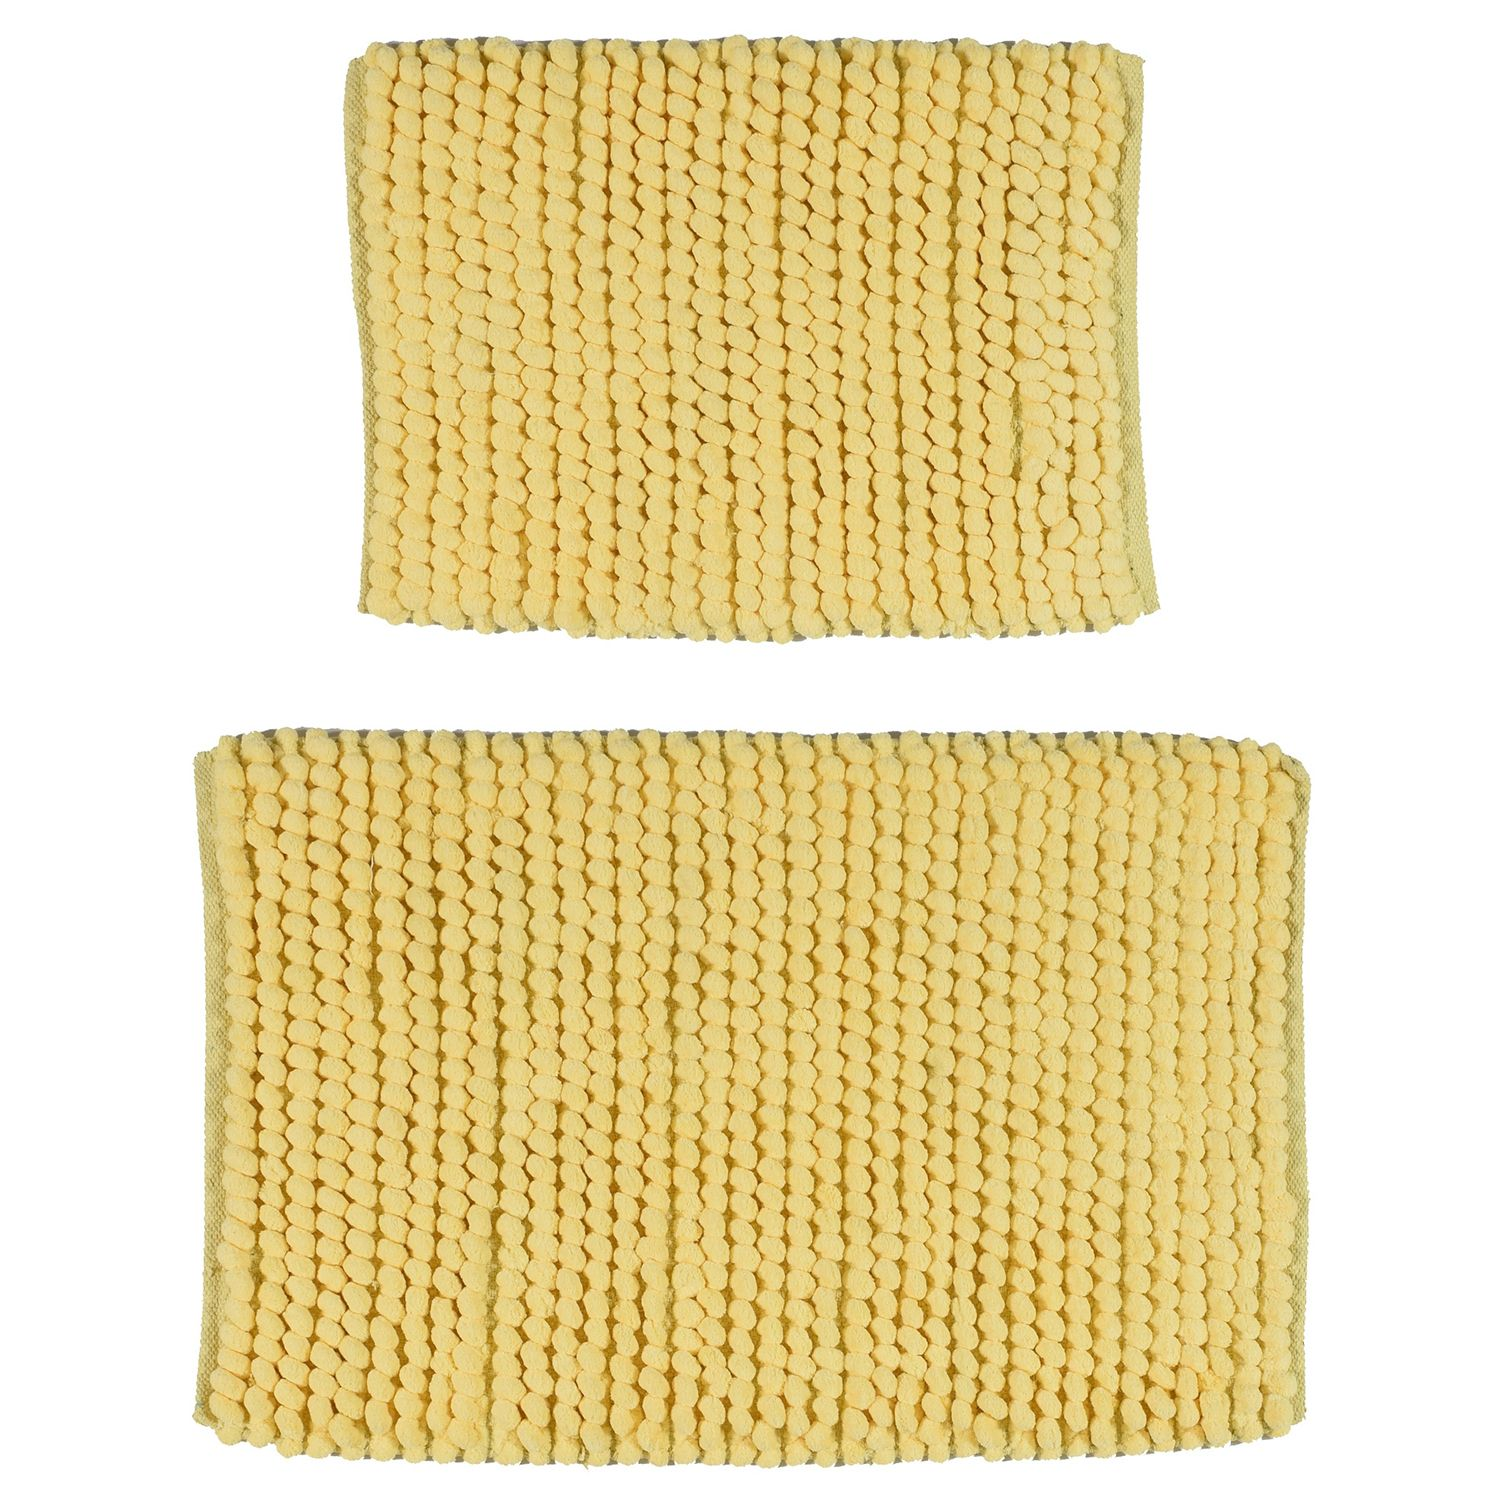 Madison Park 2 Piece Pom Pom Bath Rug Set